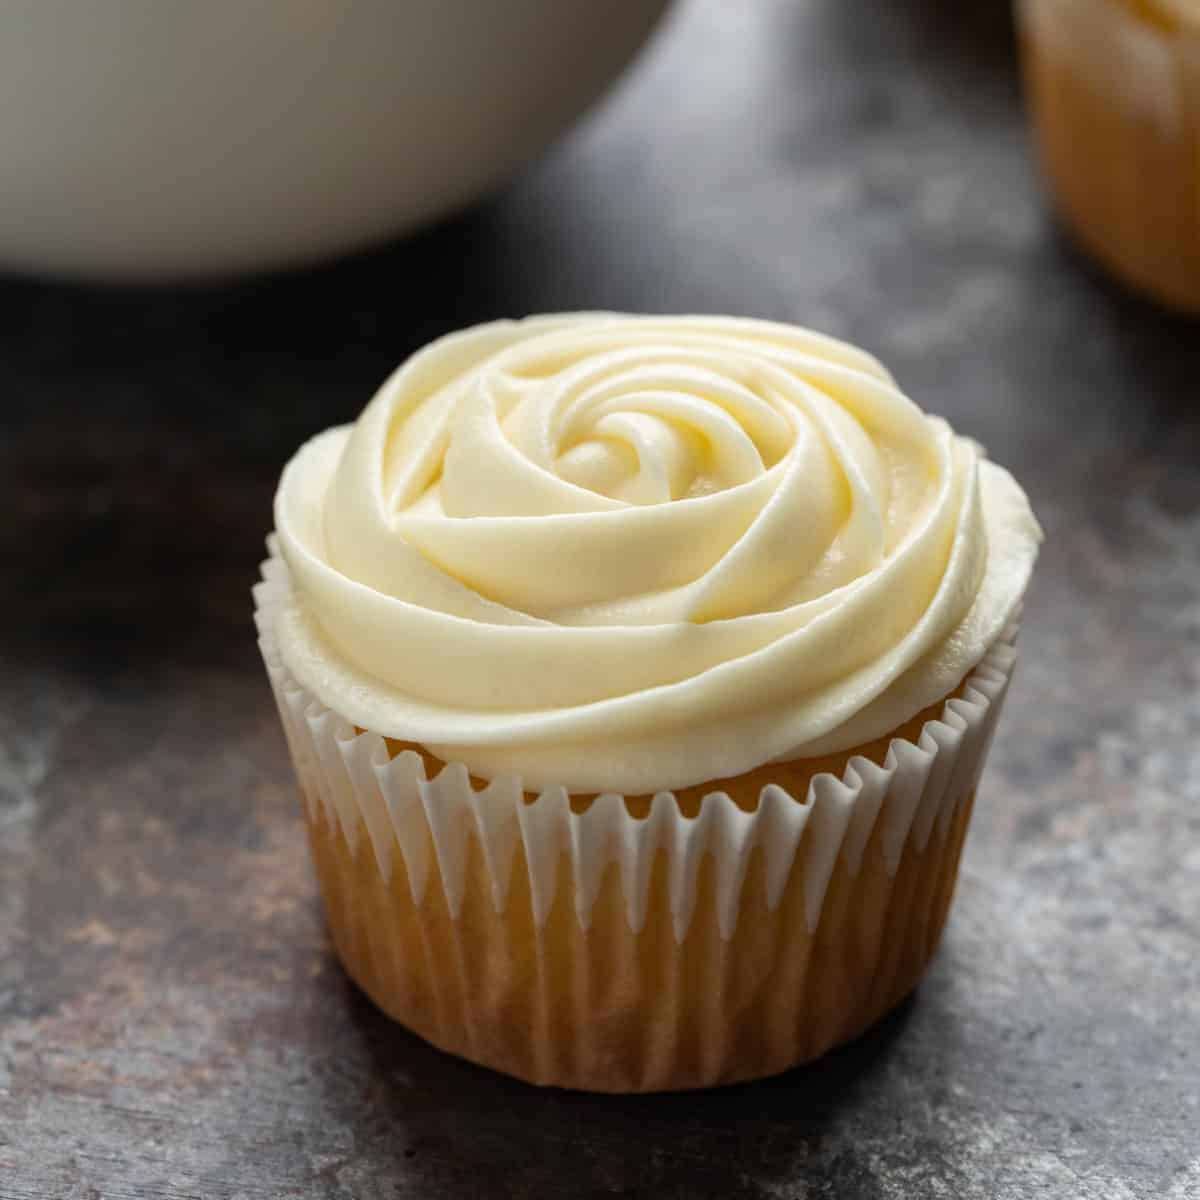 Side view of cream cheese frosting swirled over yellow cupcakes